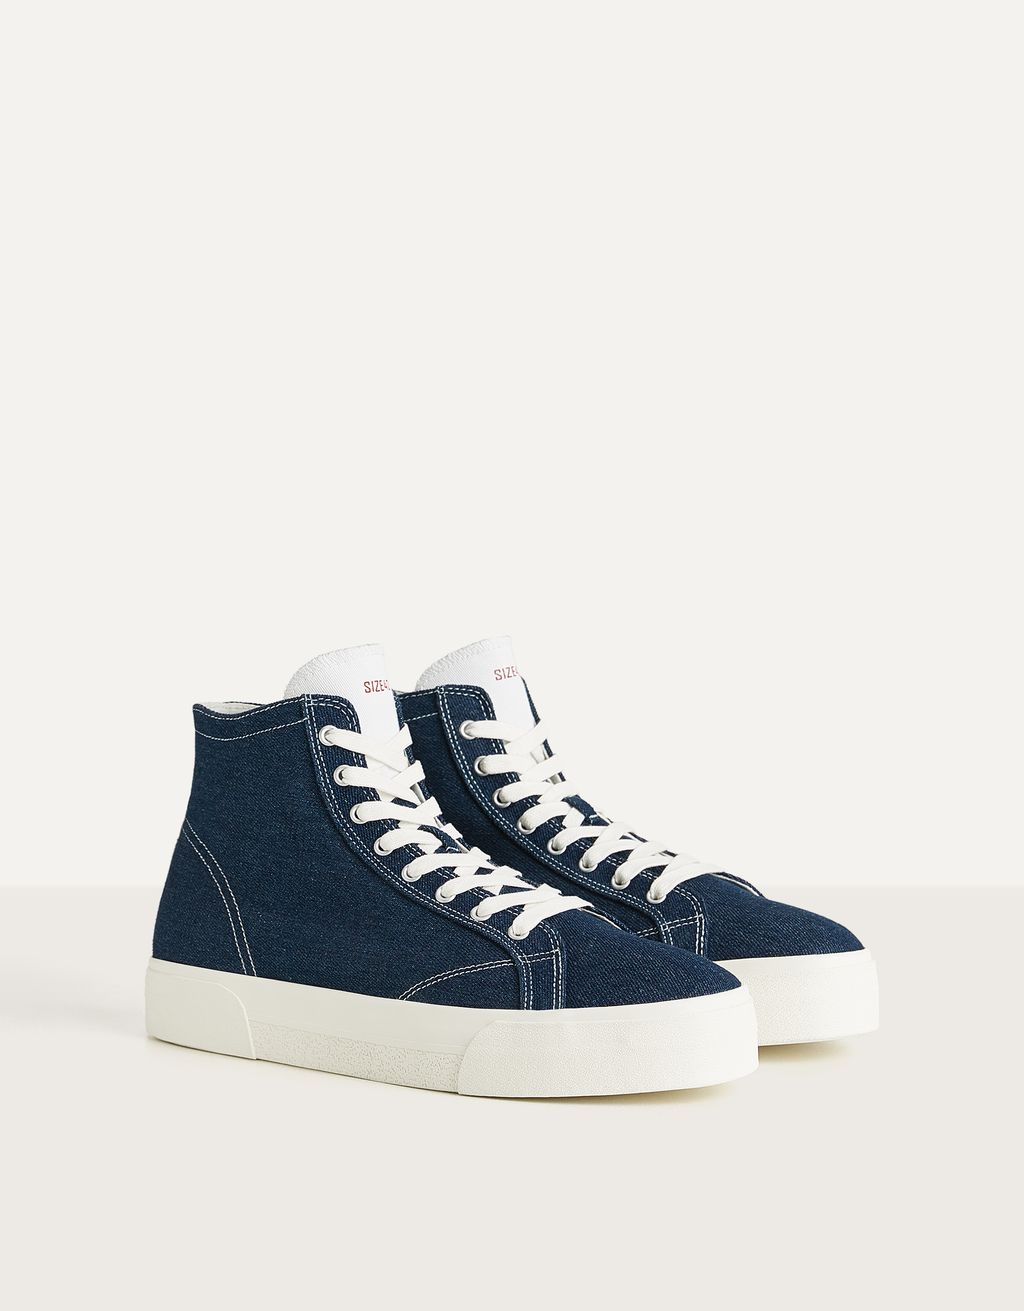 Men's denim high-top trainers